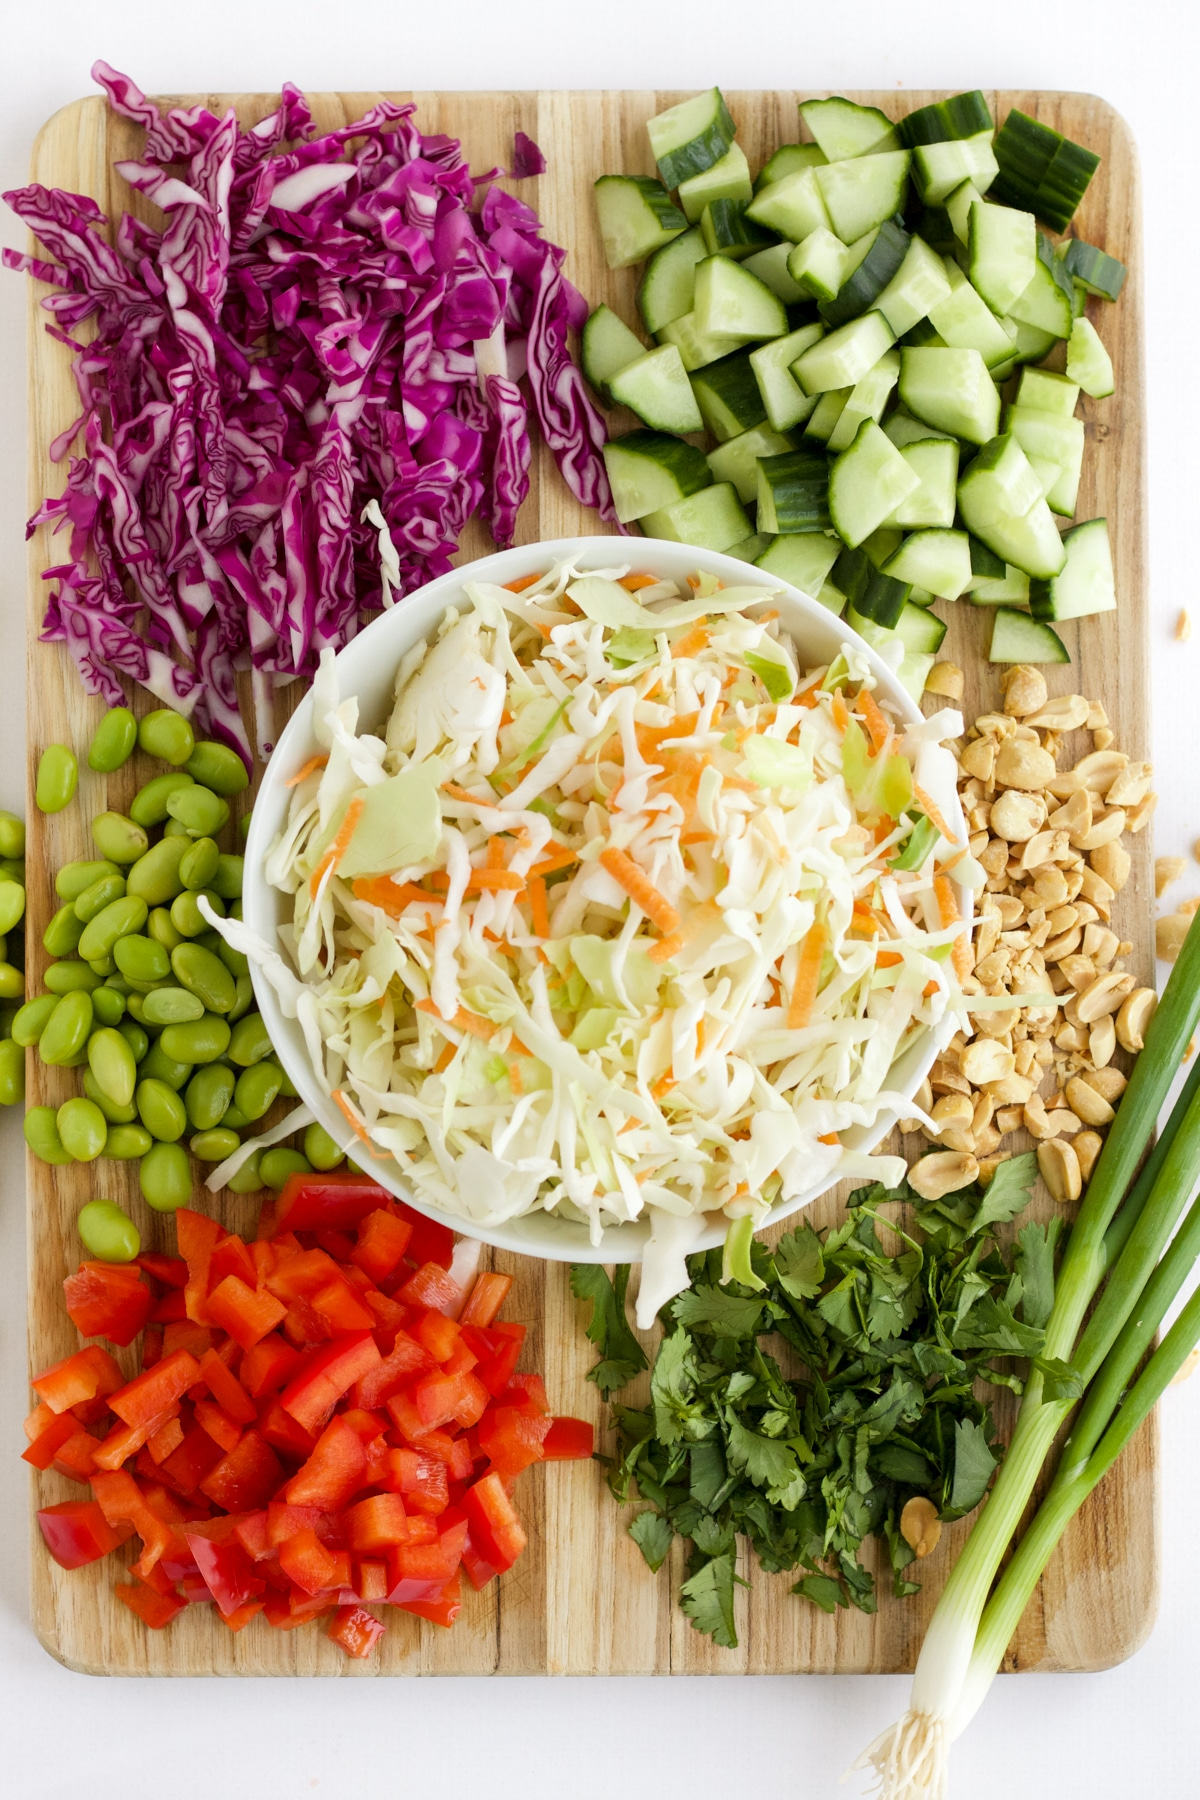 Overhead ingredient image with vegetables to make Thai Salad.